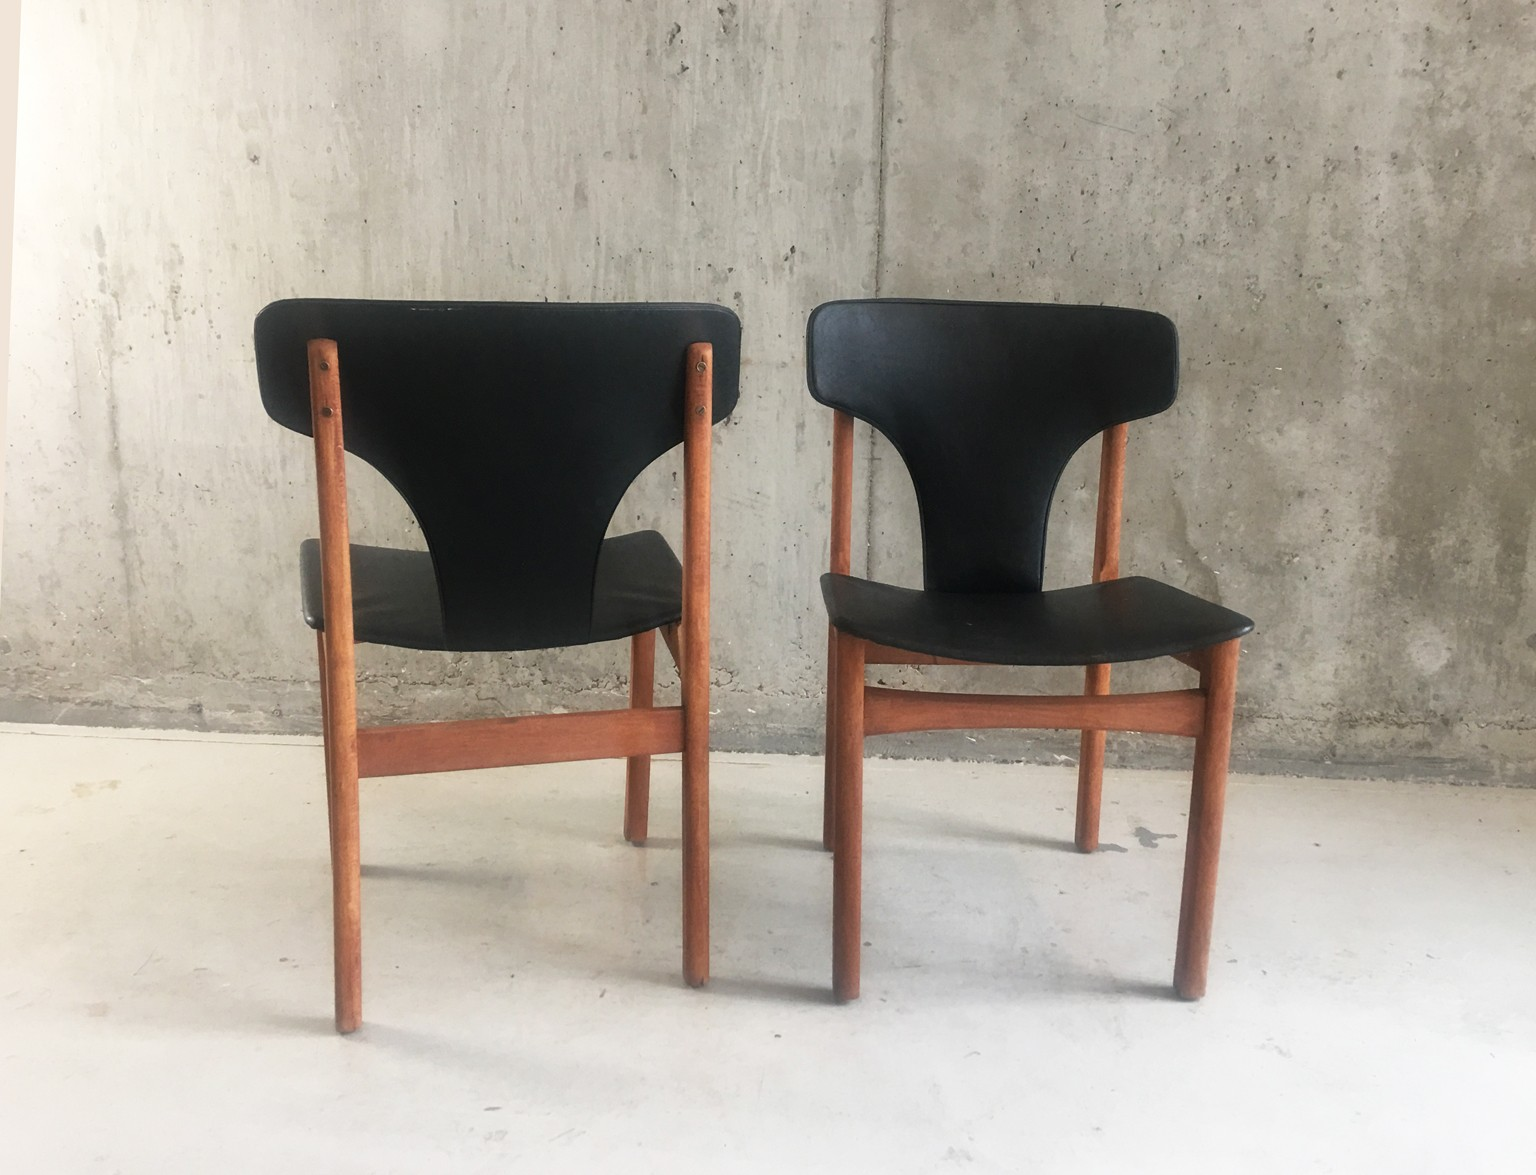 Vintage Danish Dining Chairs In Teak And Leatherette 1960s Previous Next